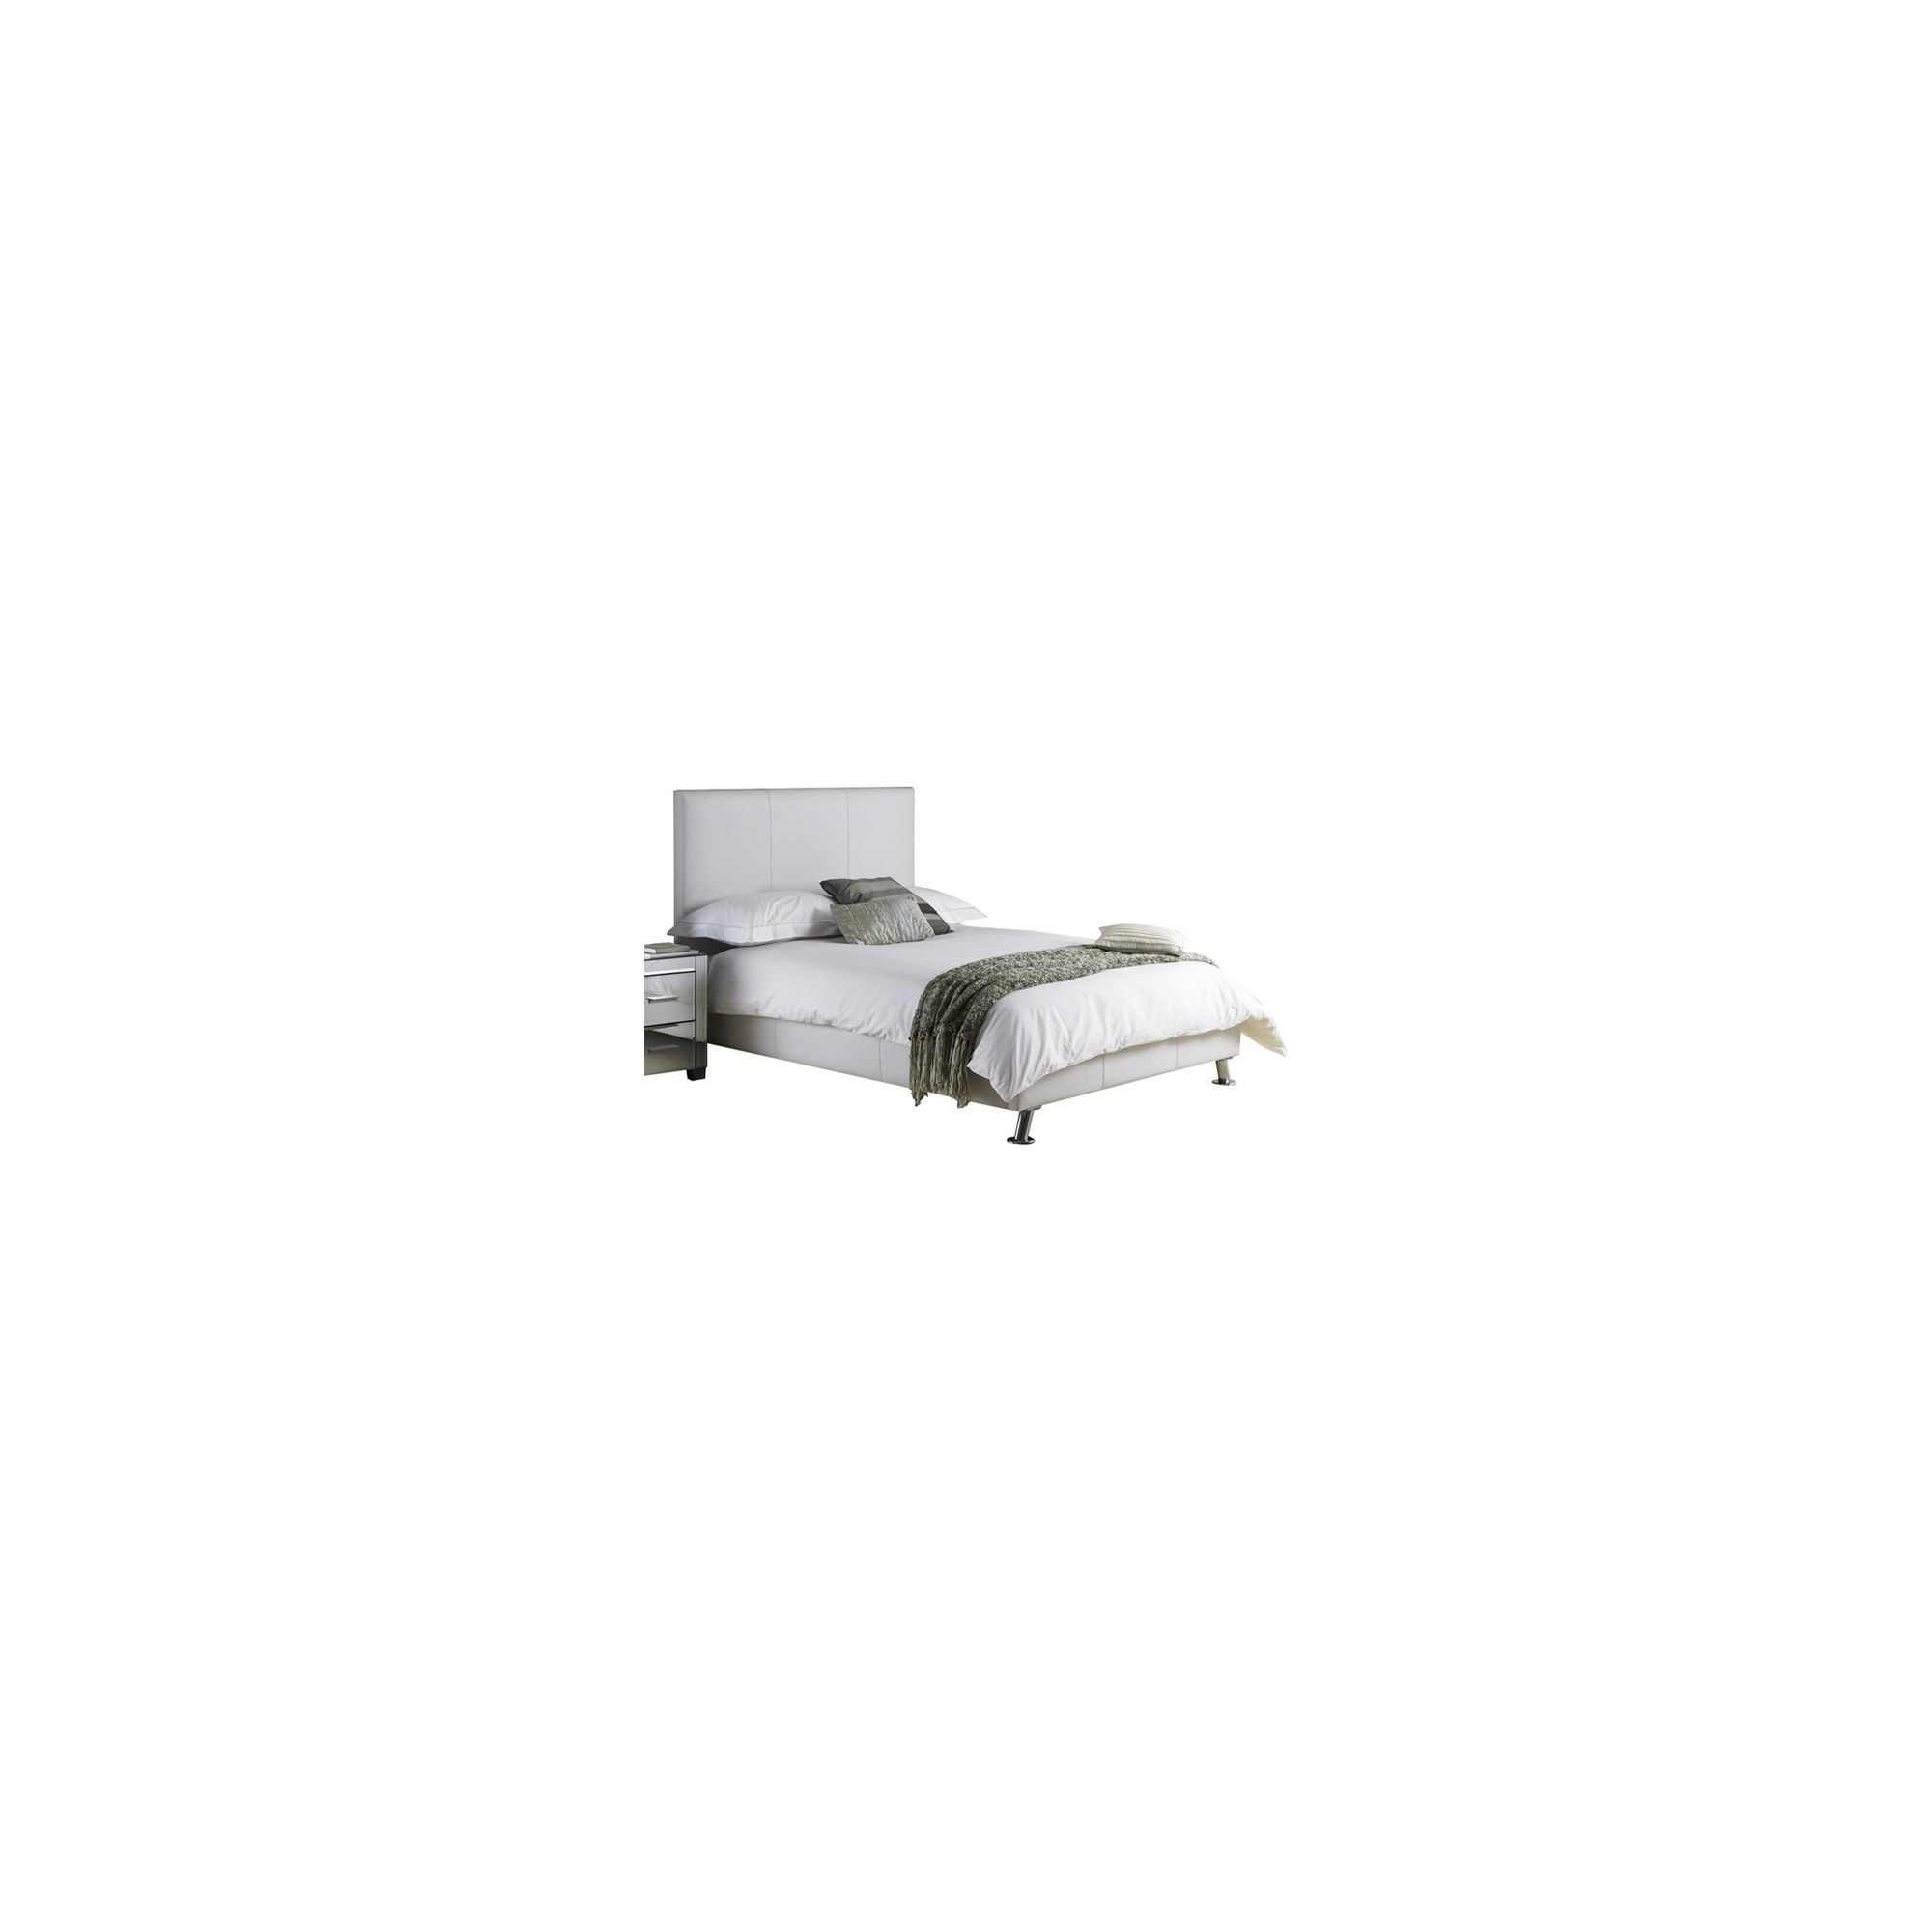 Hyder Milan Faux Leather Bed - White - King at Tesco Direct